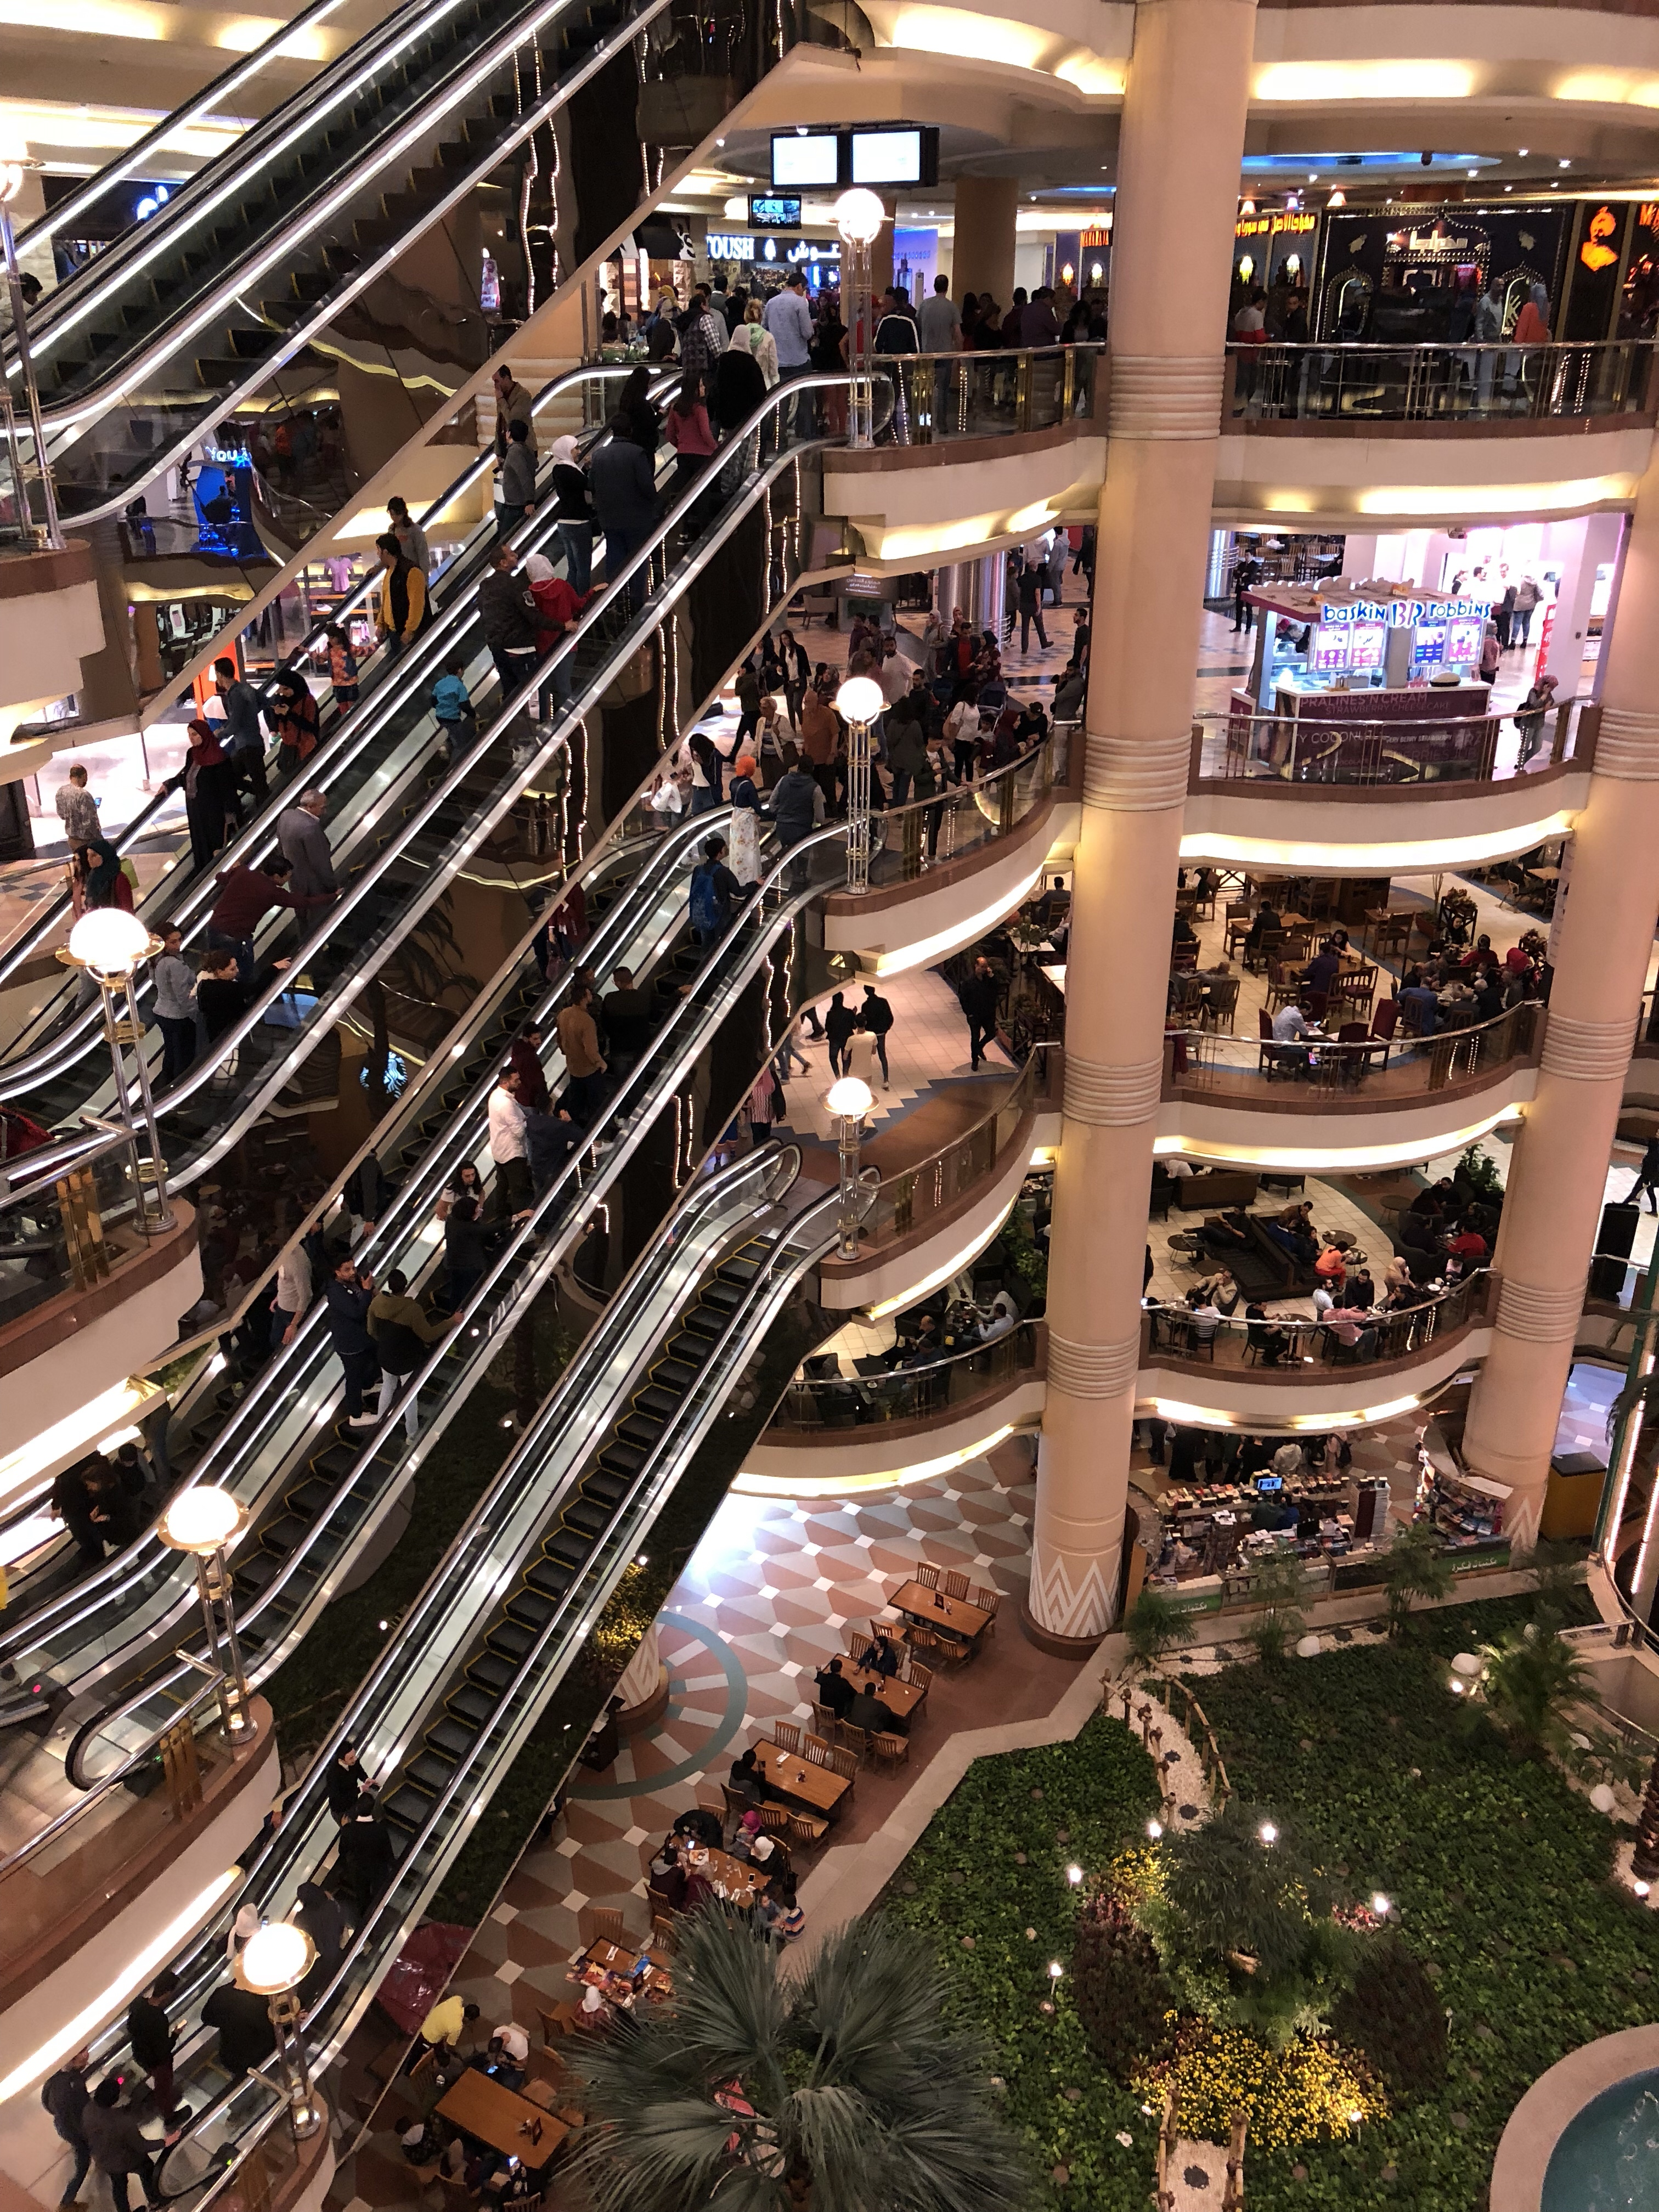 Movie night at the mall in Cairo!